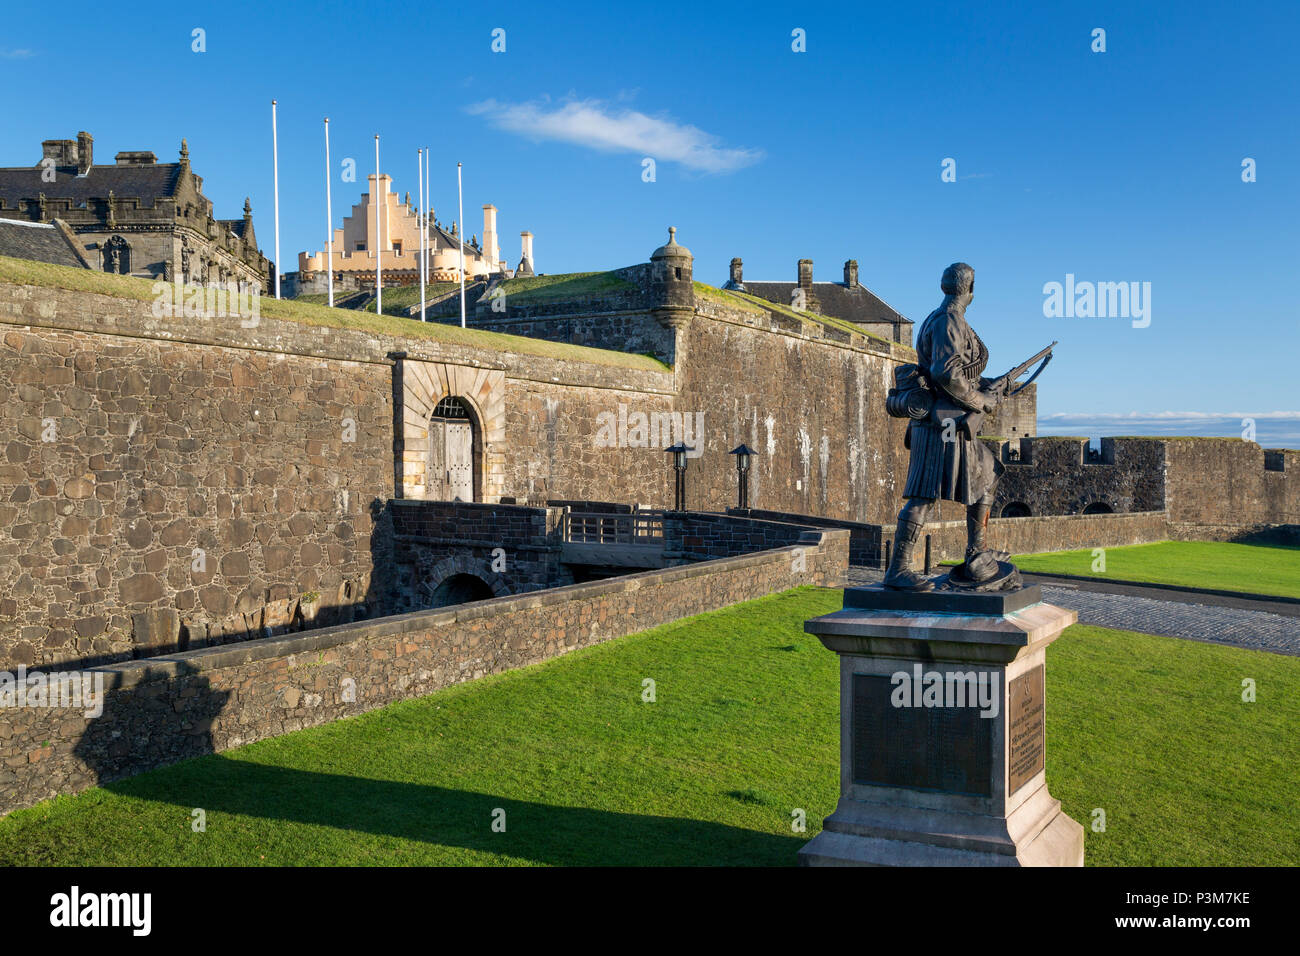 Memorial at Stirling Castle to Highland soldiers lost during South African (Boer) War (1899-1902), Stirling, Scotland, UK Stock Photo